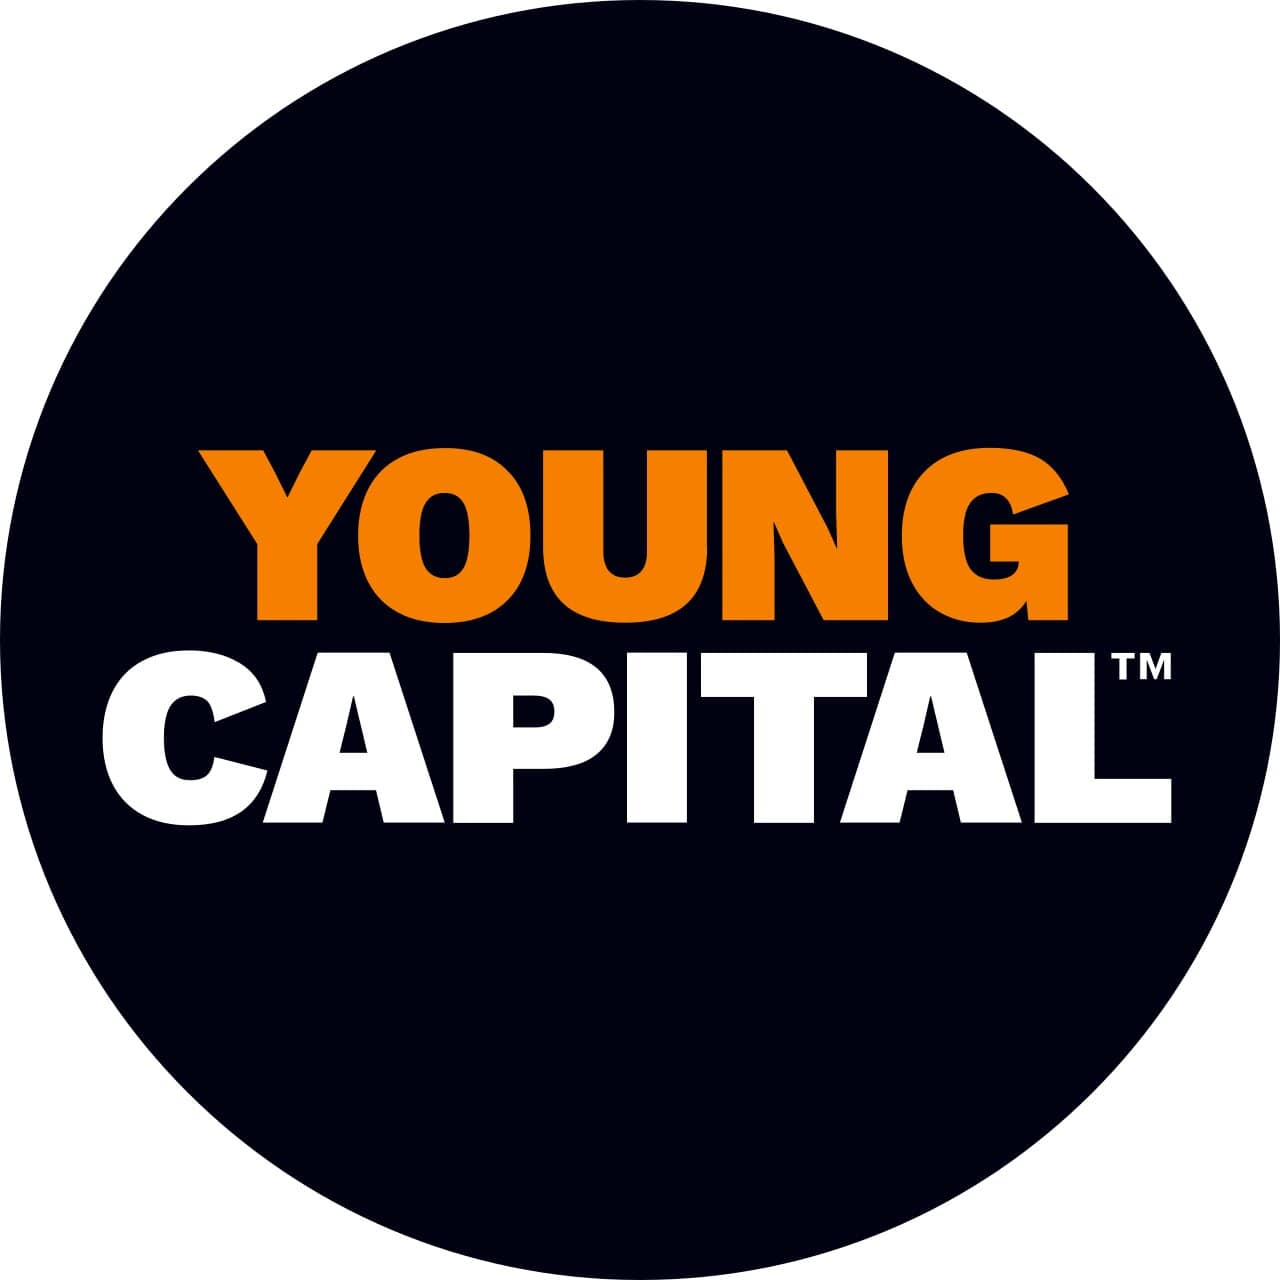 YoungCapital vacatures